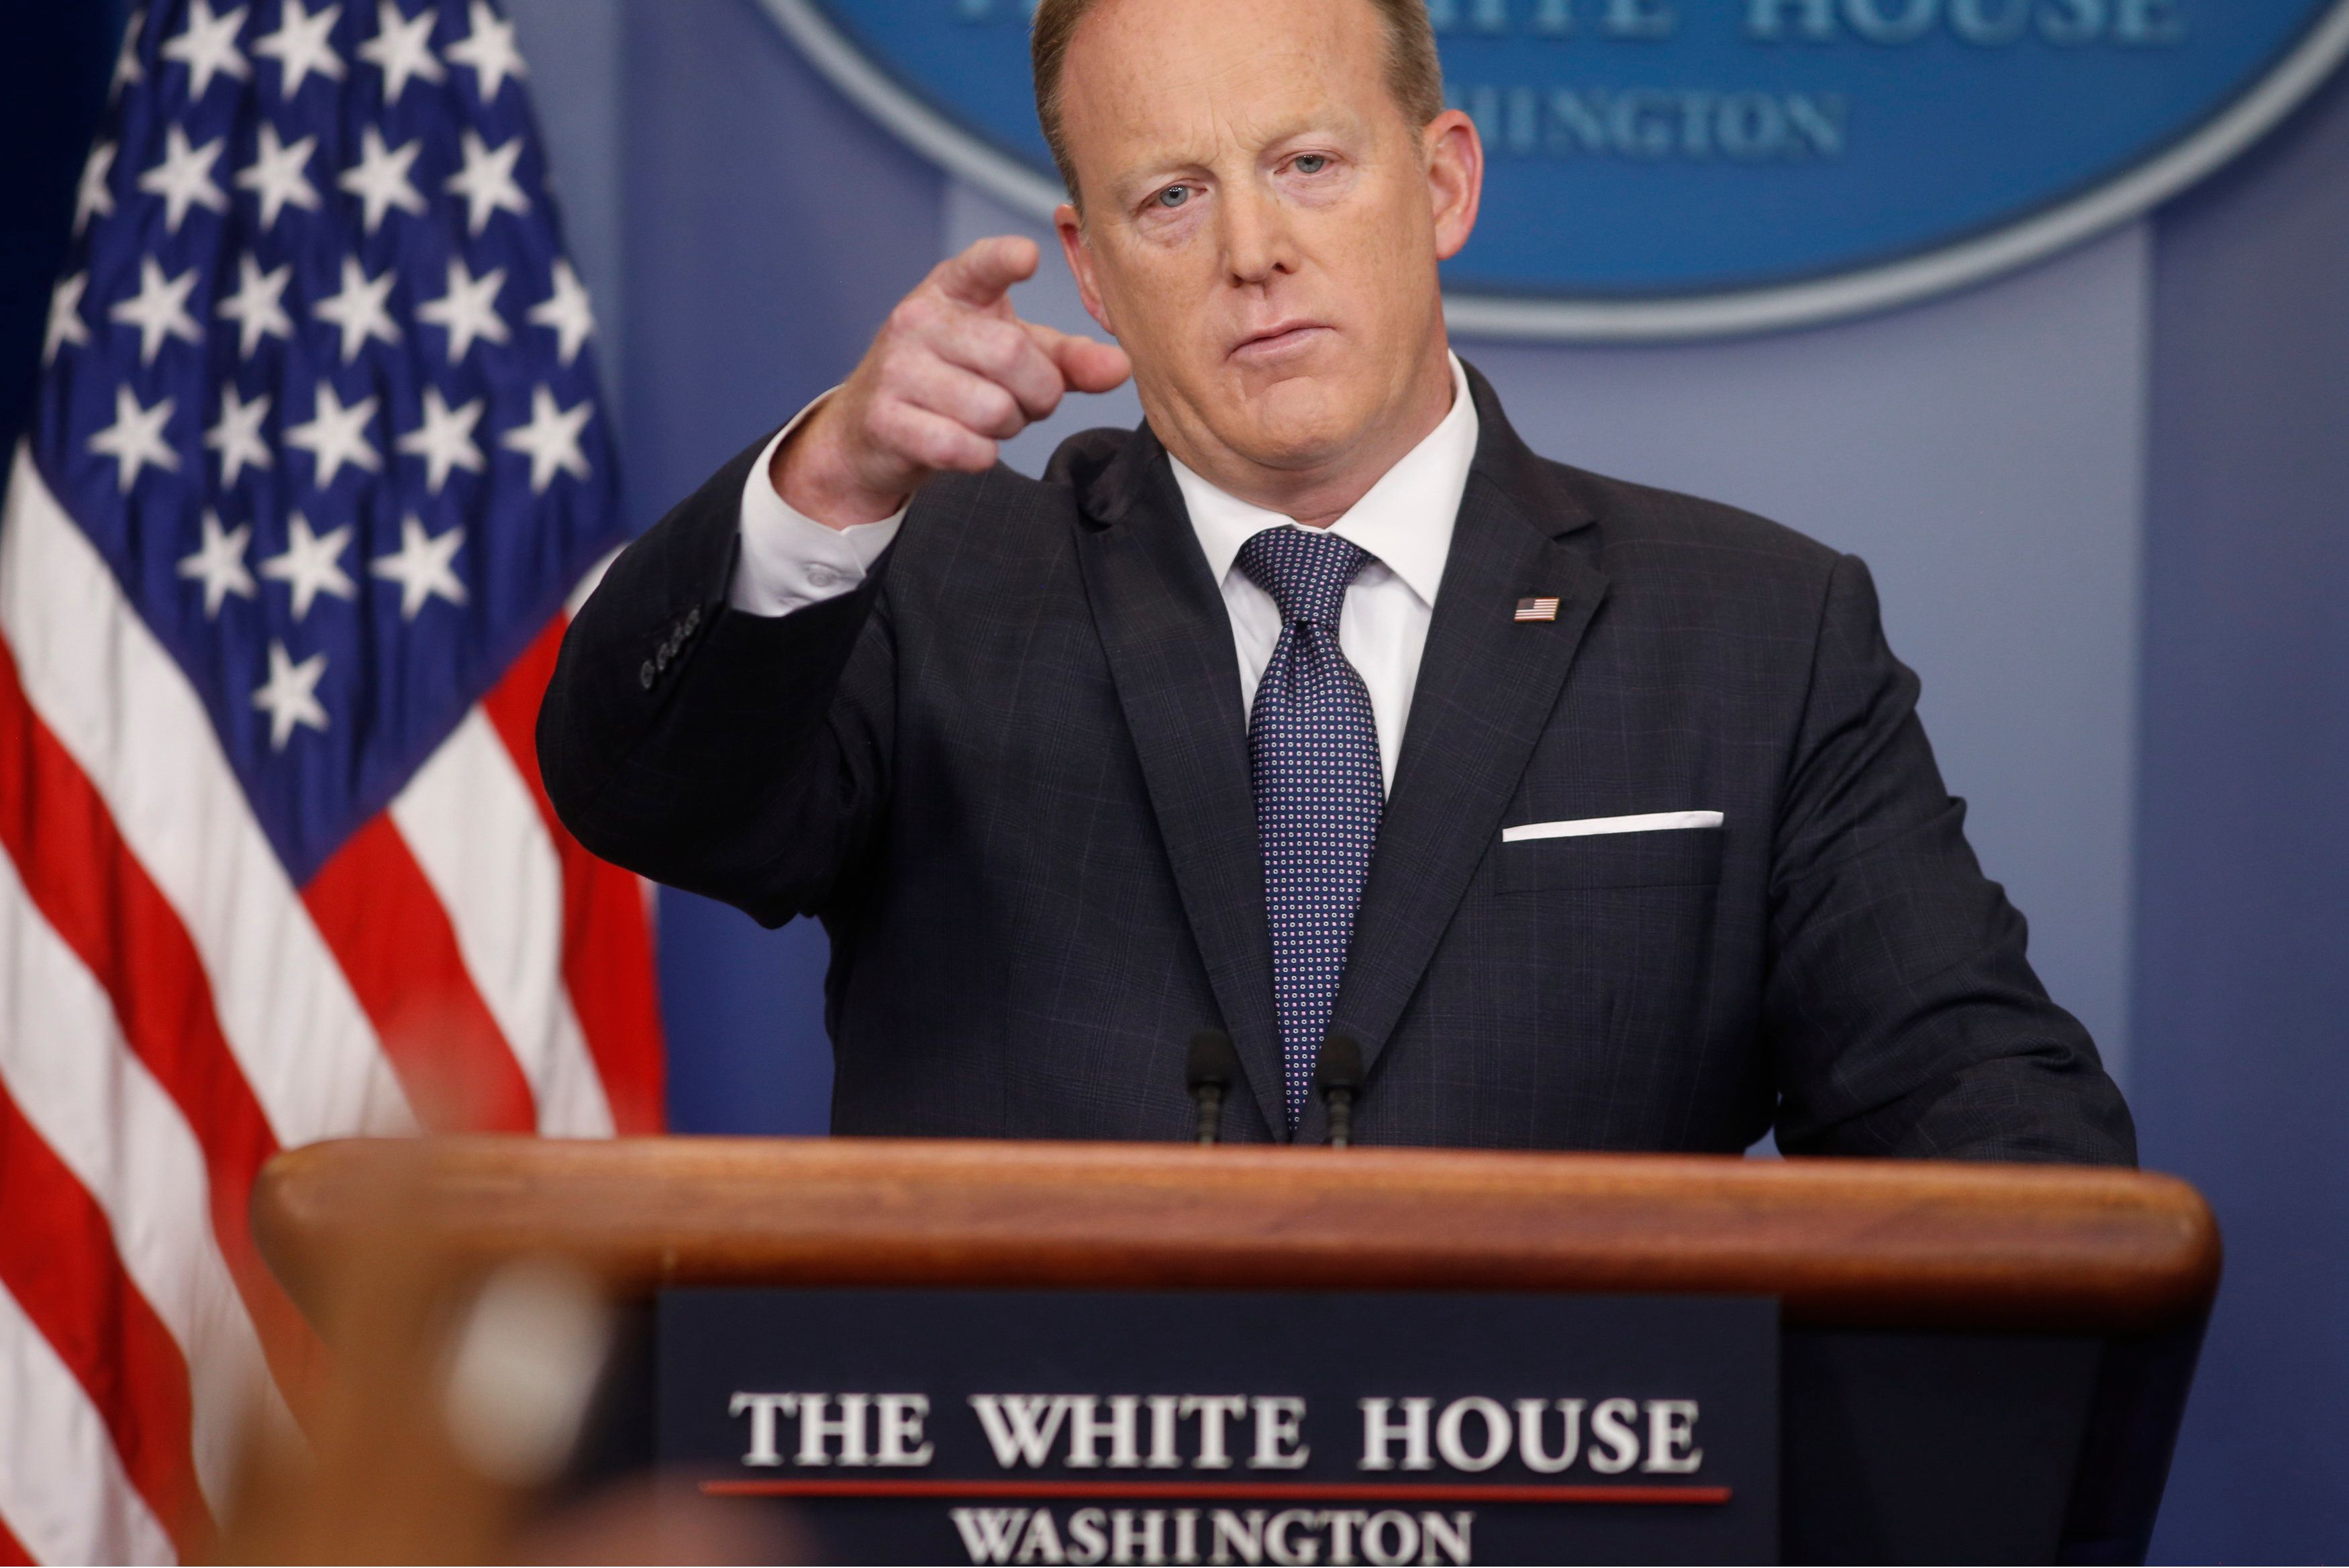 White House Press Secretary Sean Spicer takes questions during his daily briefing at the White House in Washington, U.S., May 30, 2017. REUTERS/Joshua Roberts